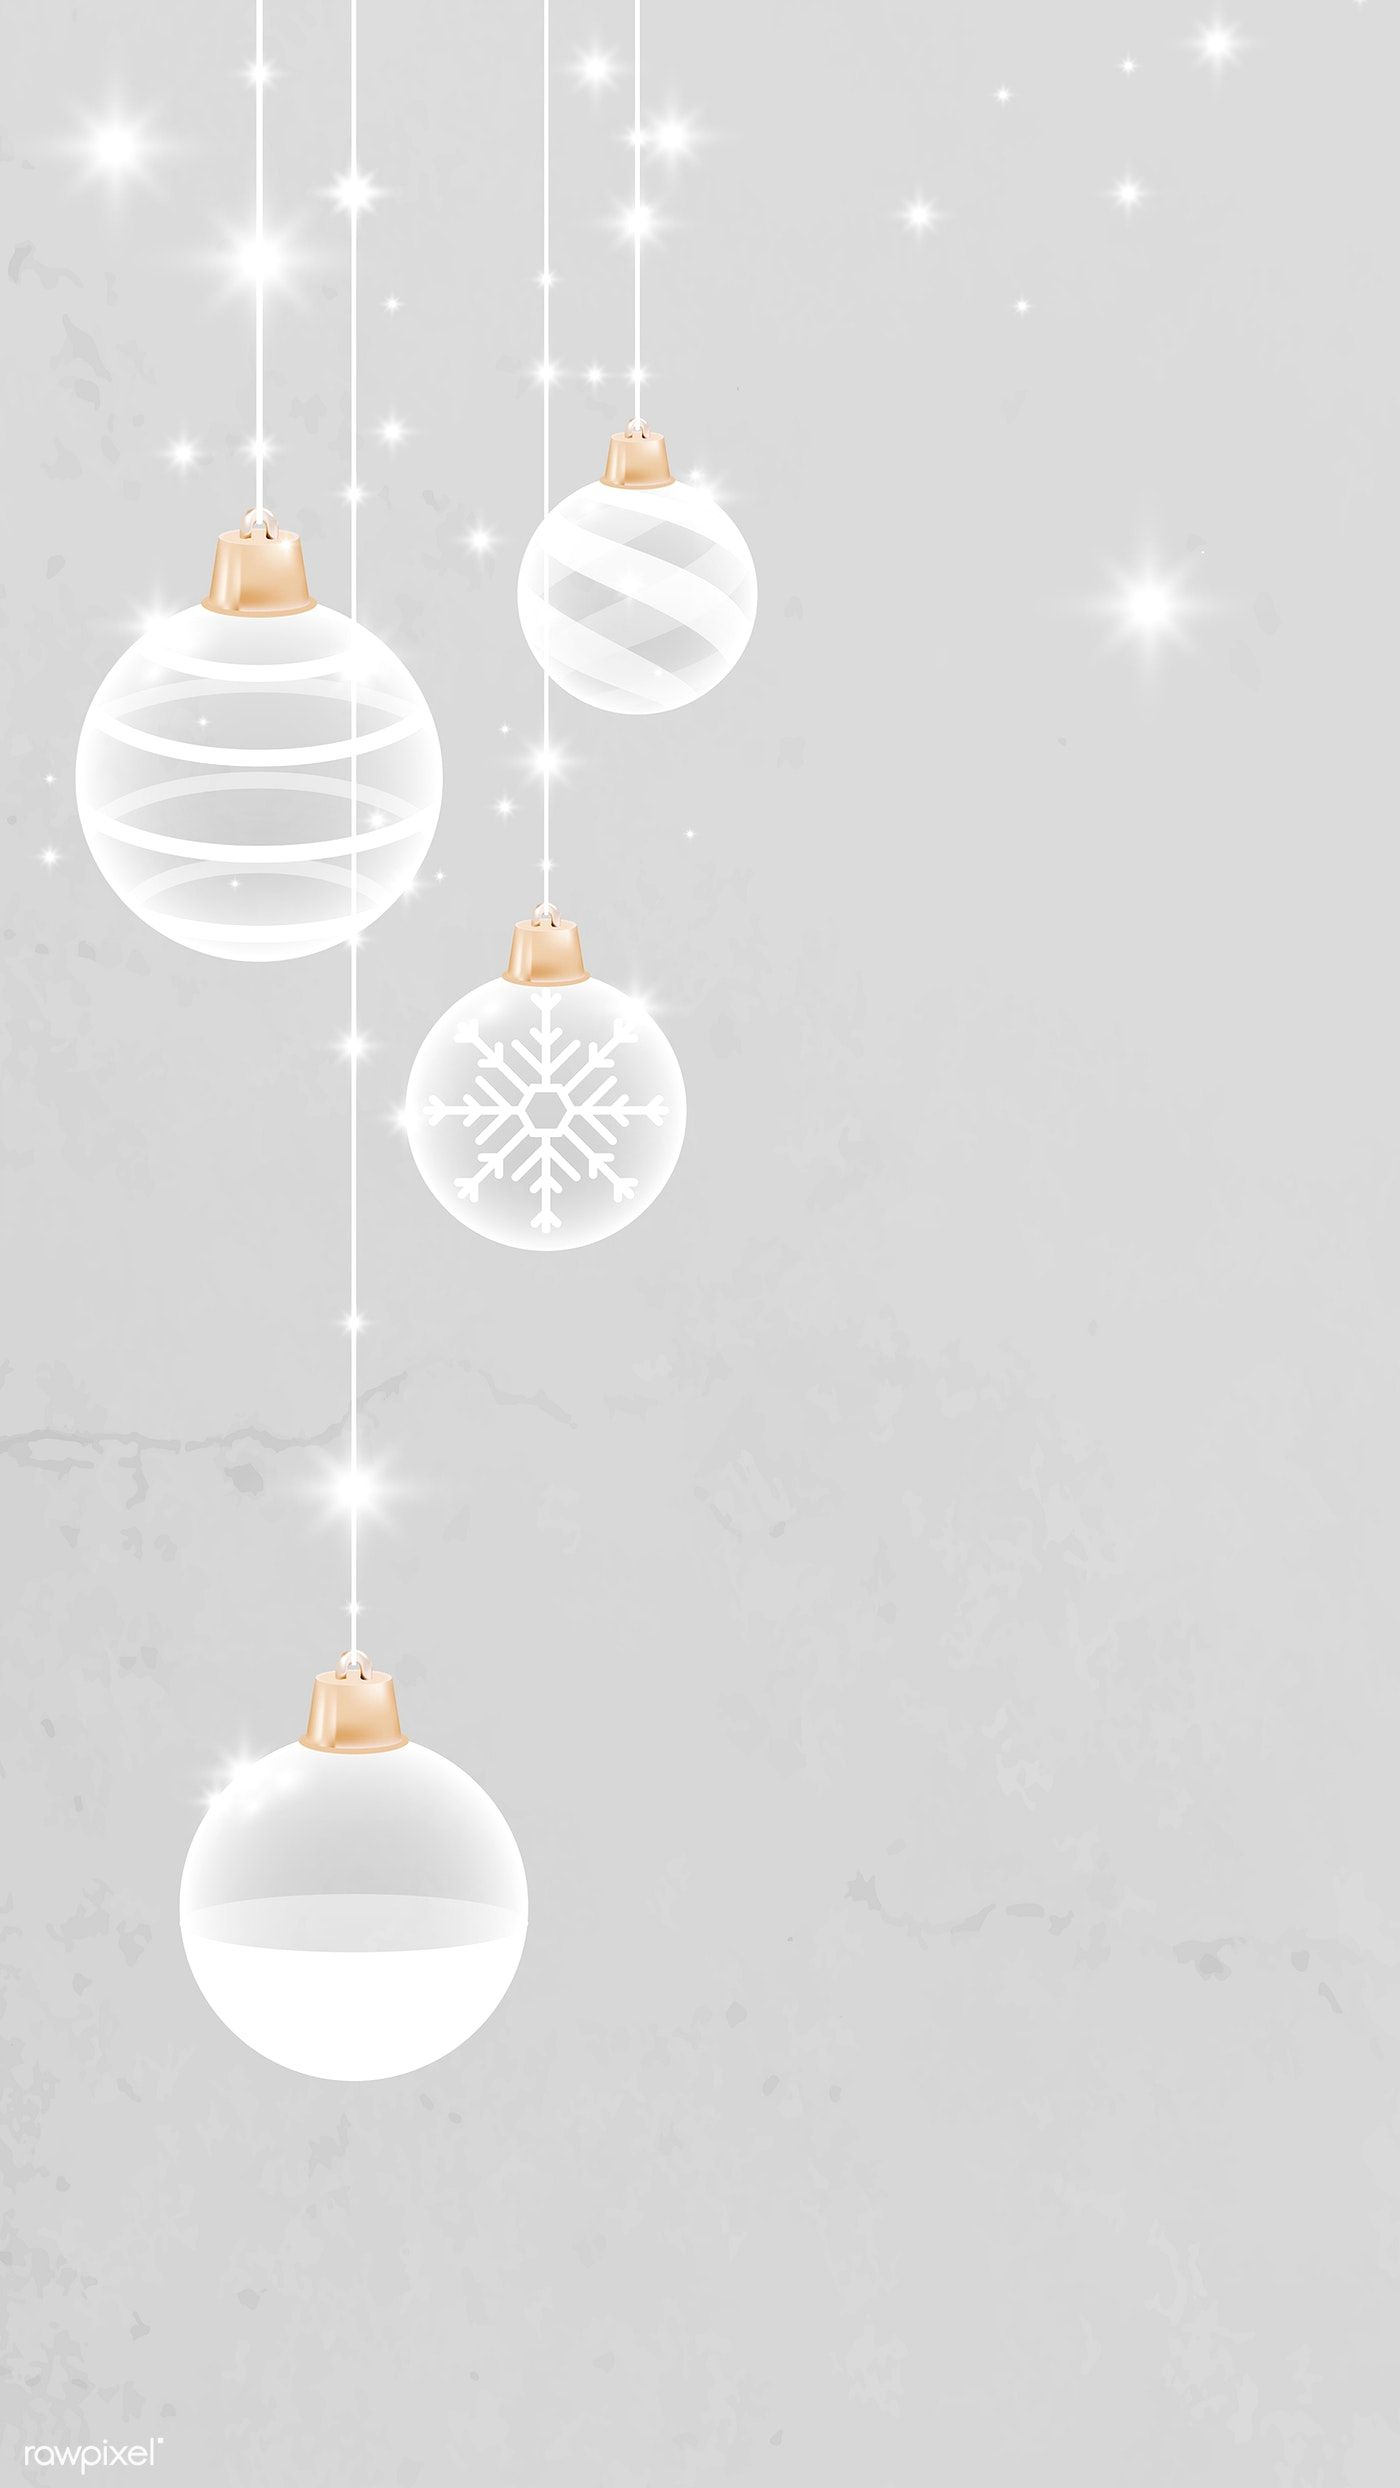 Download Premium Vector Of White Christmas Bauble Patterned On Gray Mobile Christmas Phone Wallpaper Wallpaper Iphone Christmas Cute Christmas Wallpaper